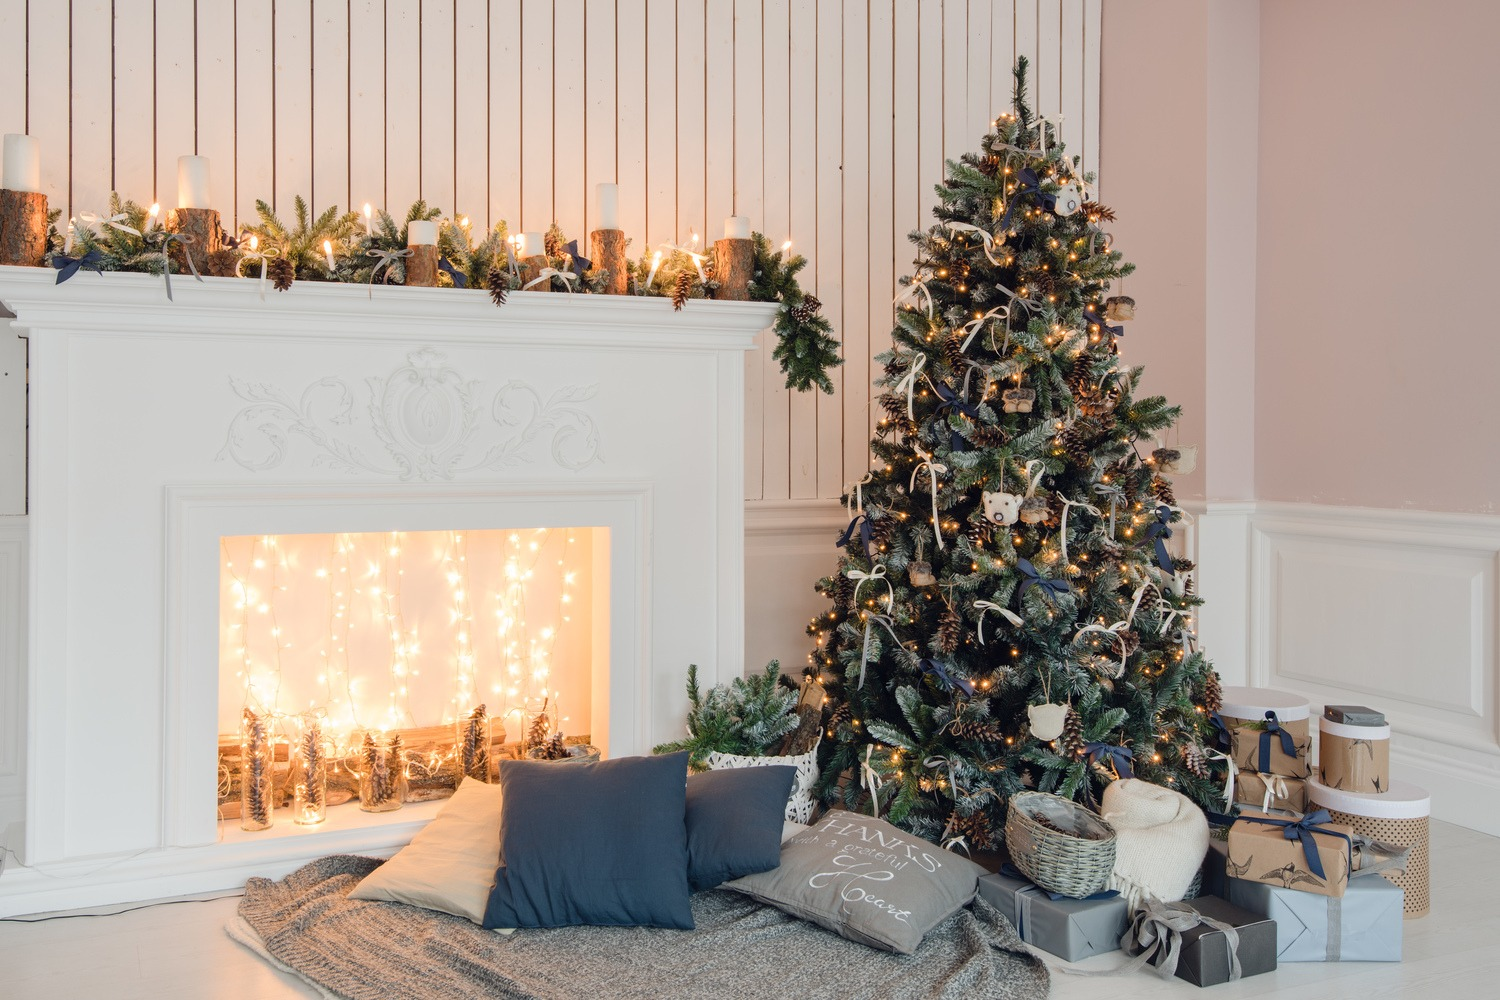 Luxury Holiday Décor